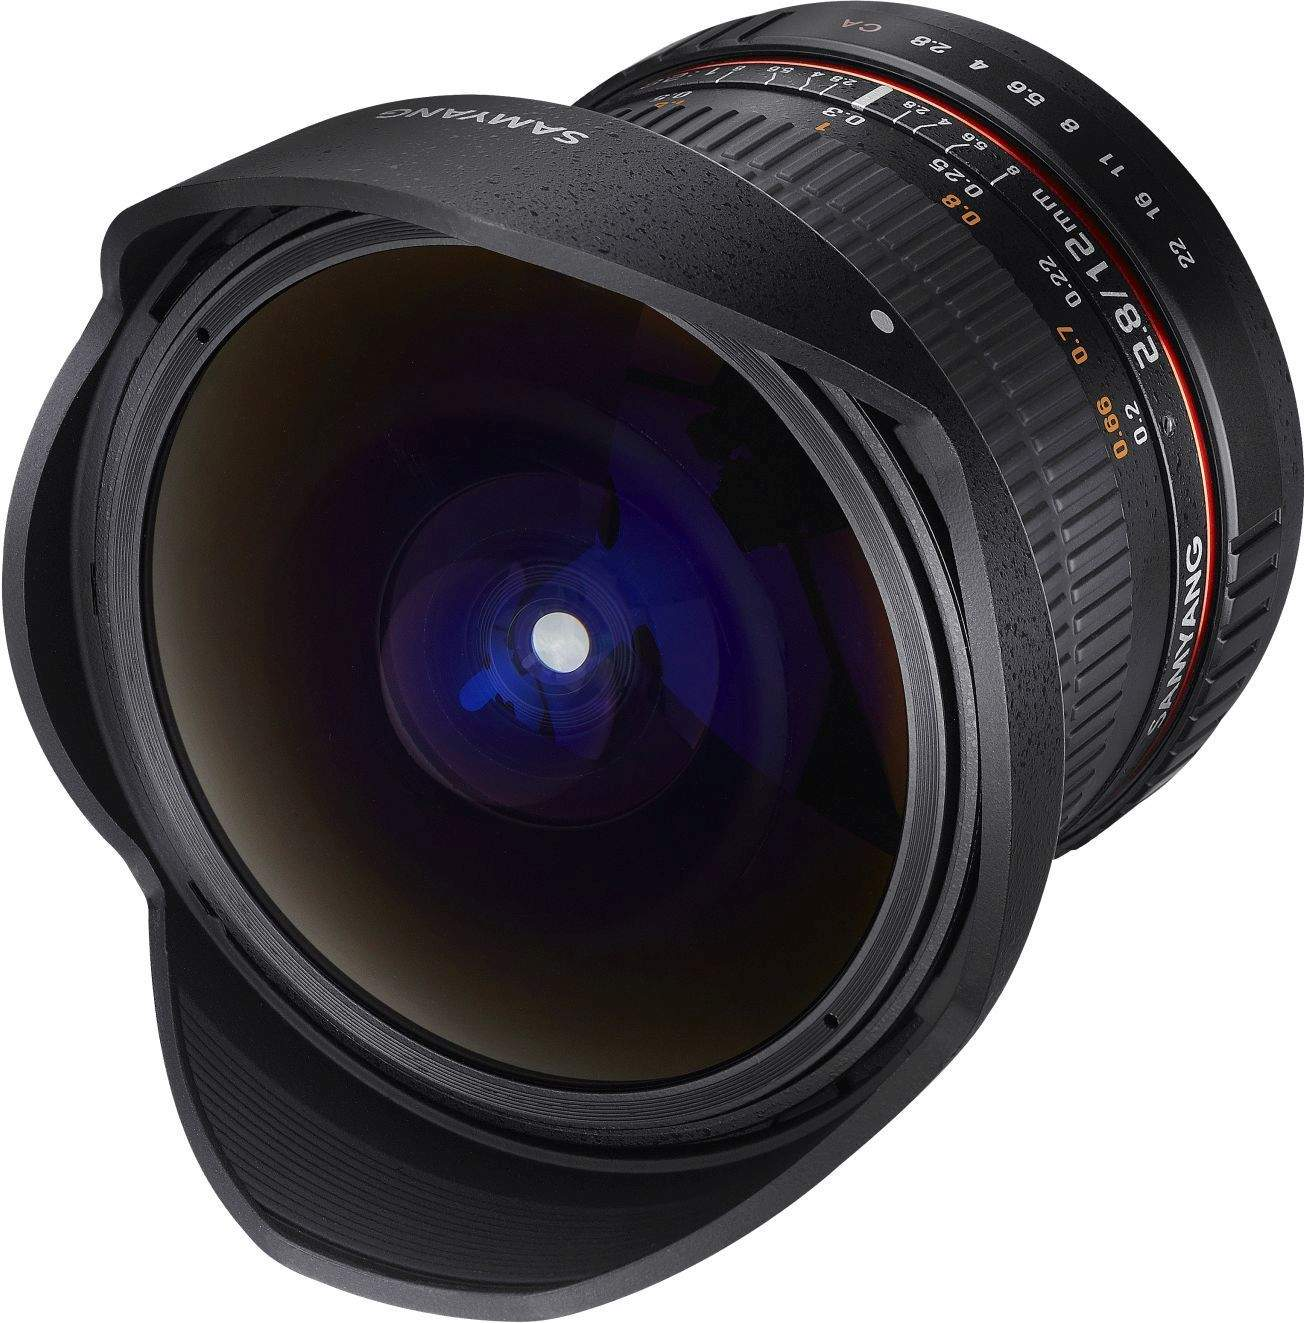 Samyang 12mm F2.8 UMC II MFT Full Frame Camera Lens main image